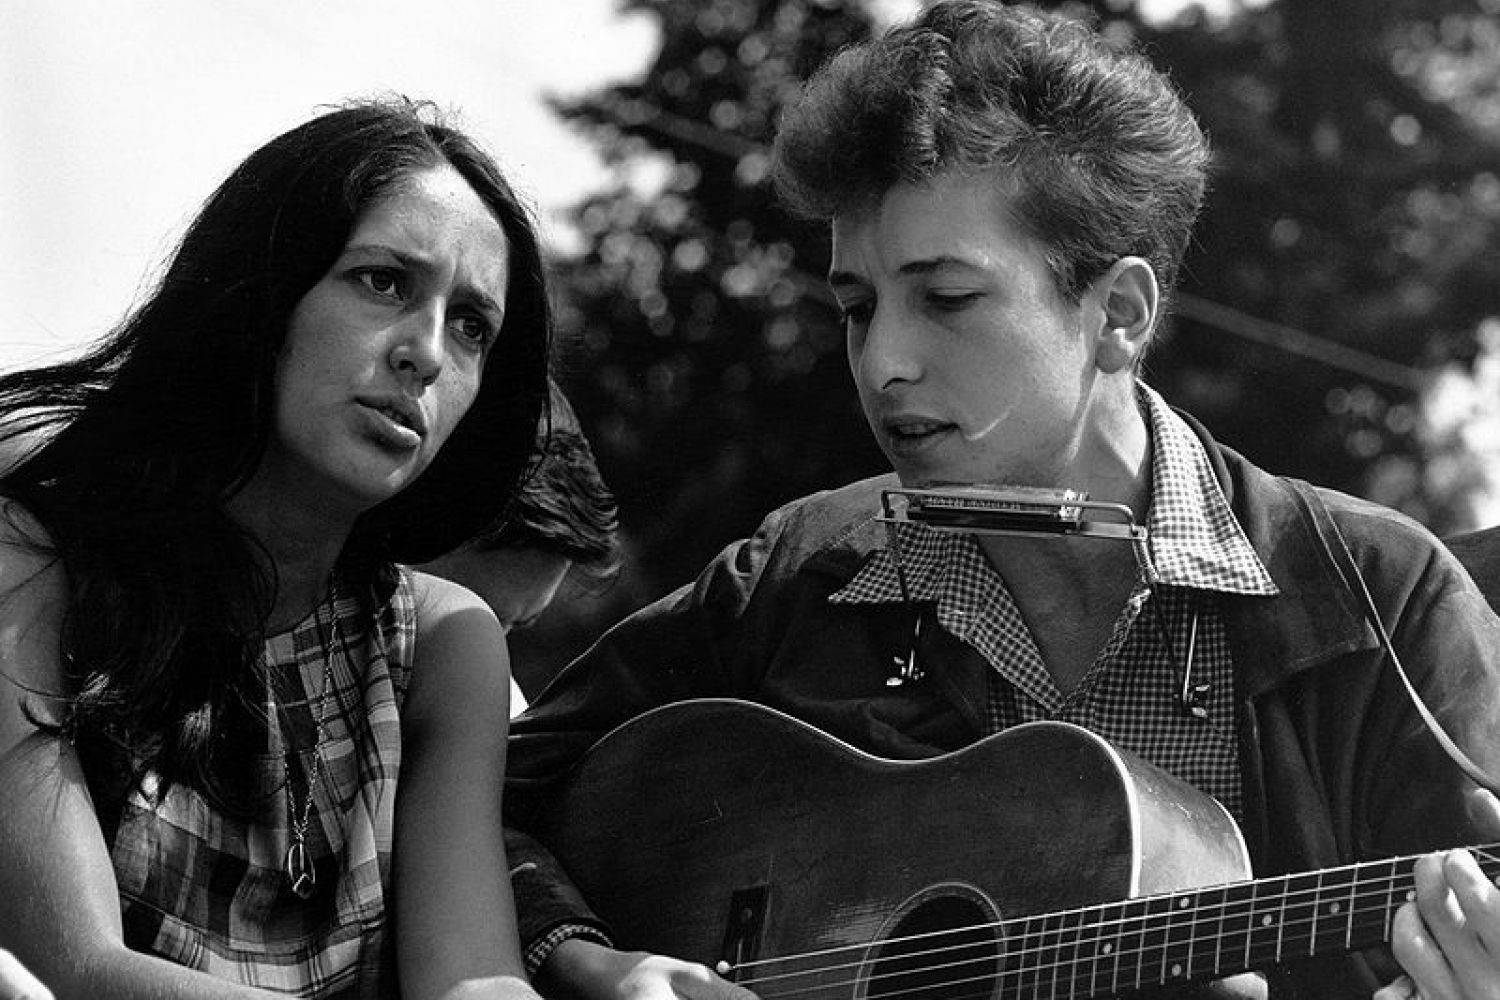 21st Century Protest Music: Will There Be Another Dylan? Should There Be?